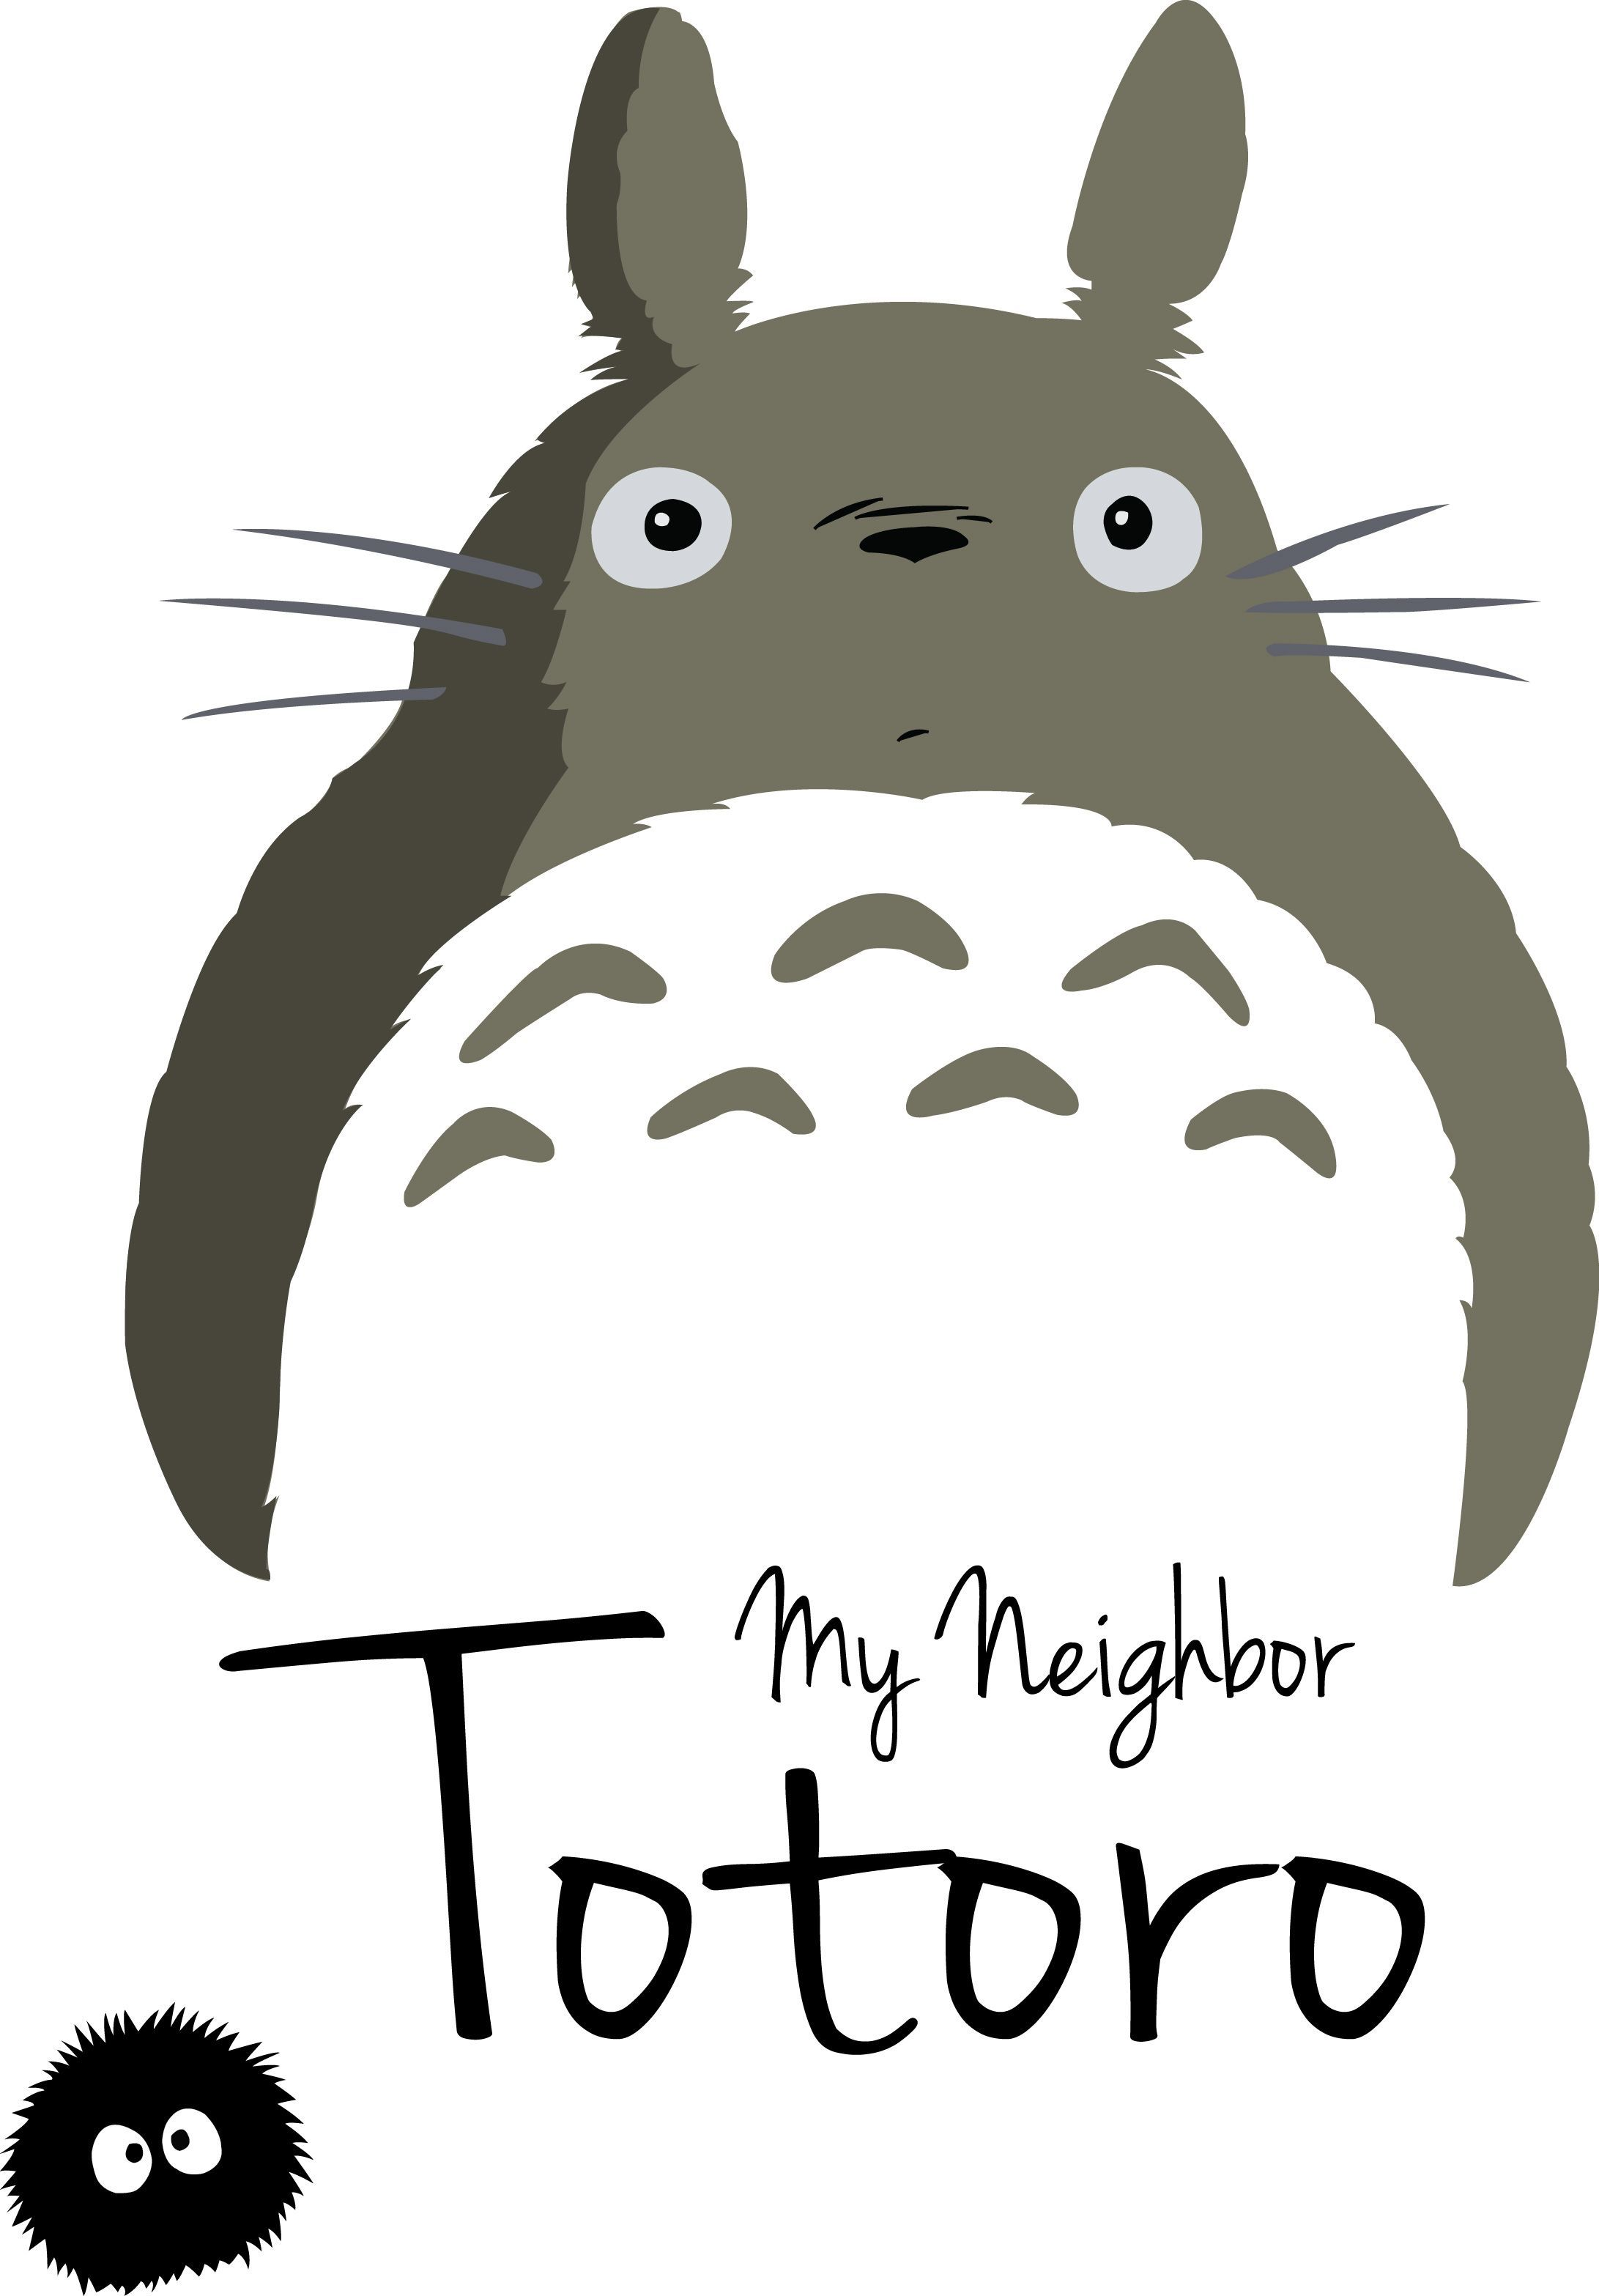 totoro Google Search Tattoo Pinterest Searches